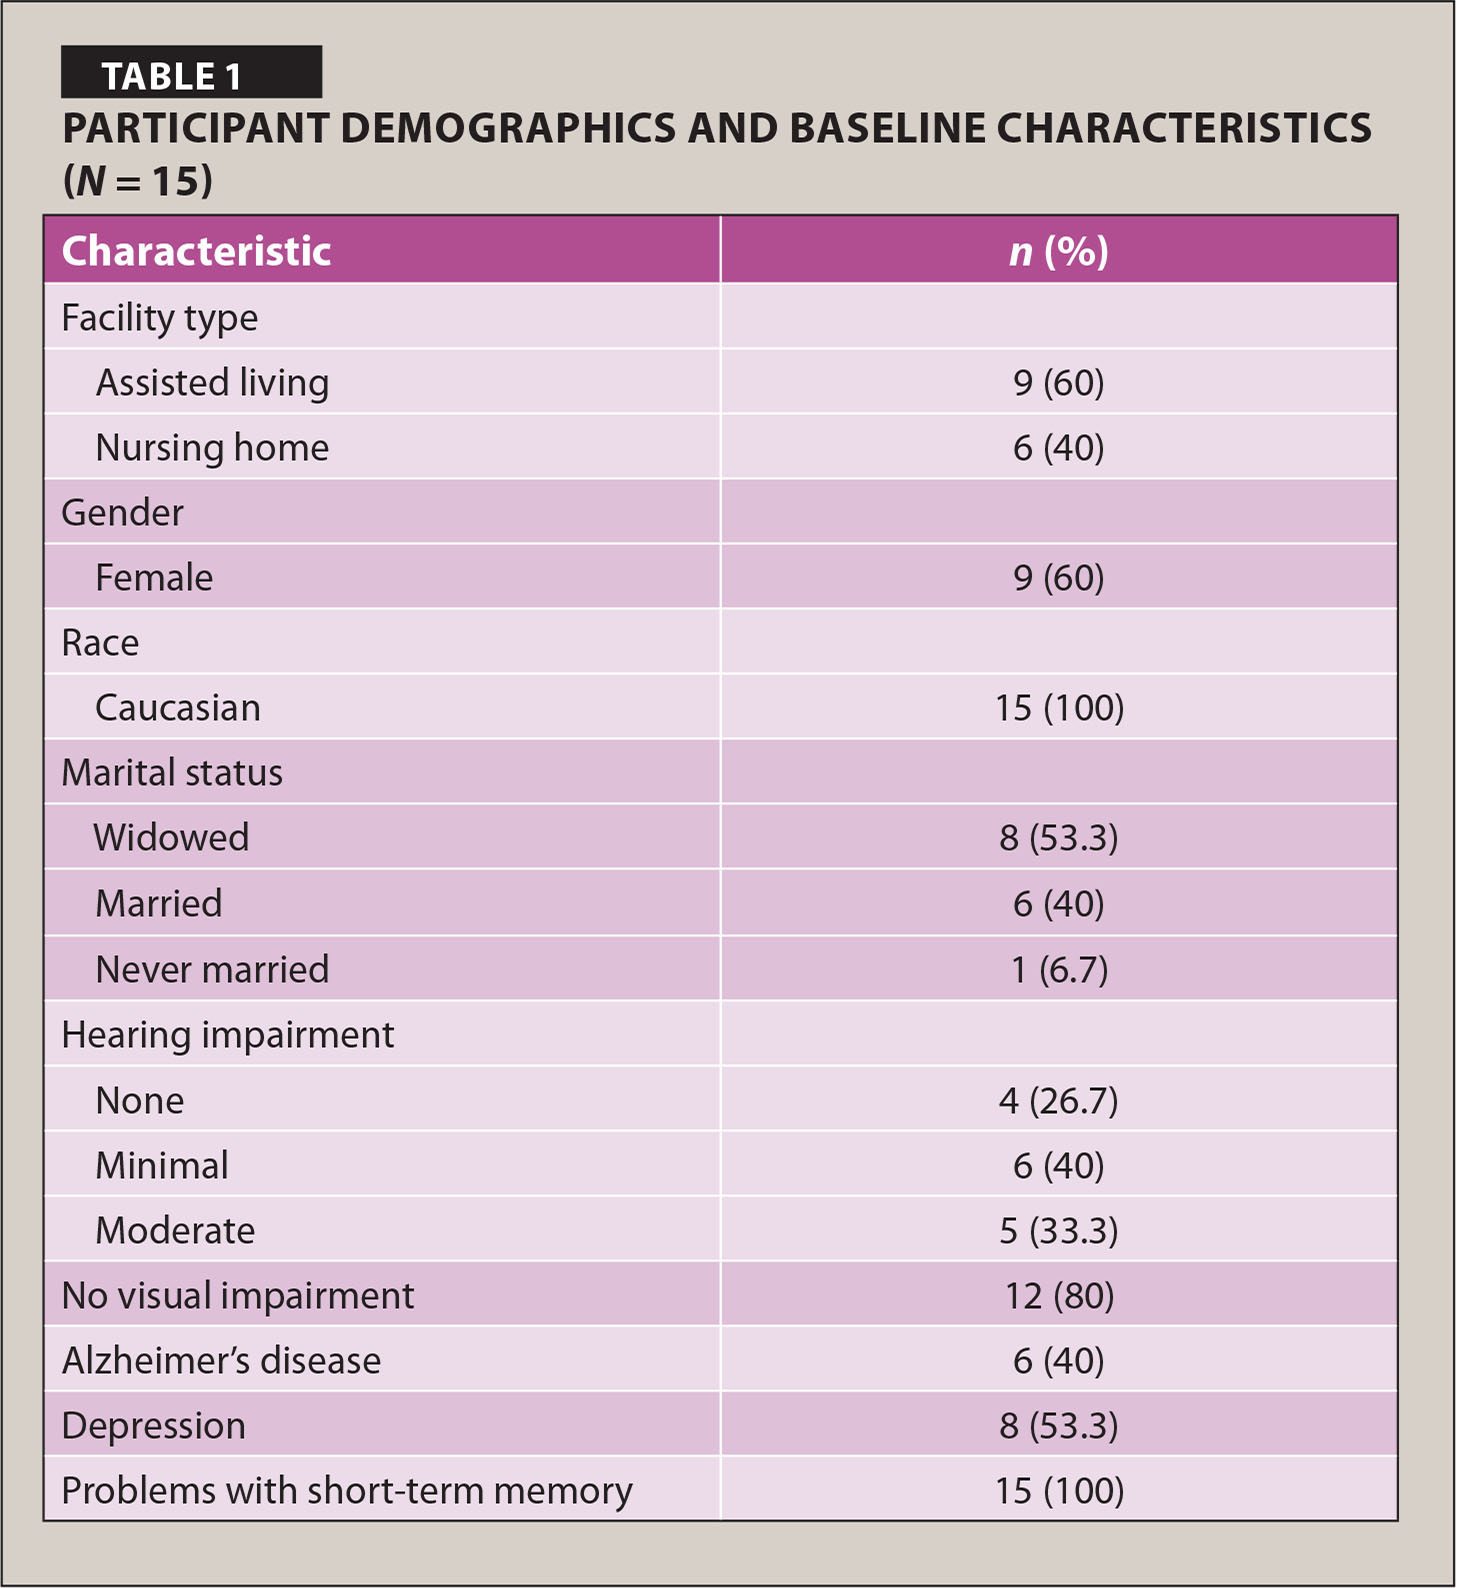 Participant Demographics and Baseline Characteristics (N = 15)